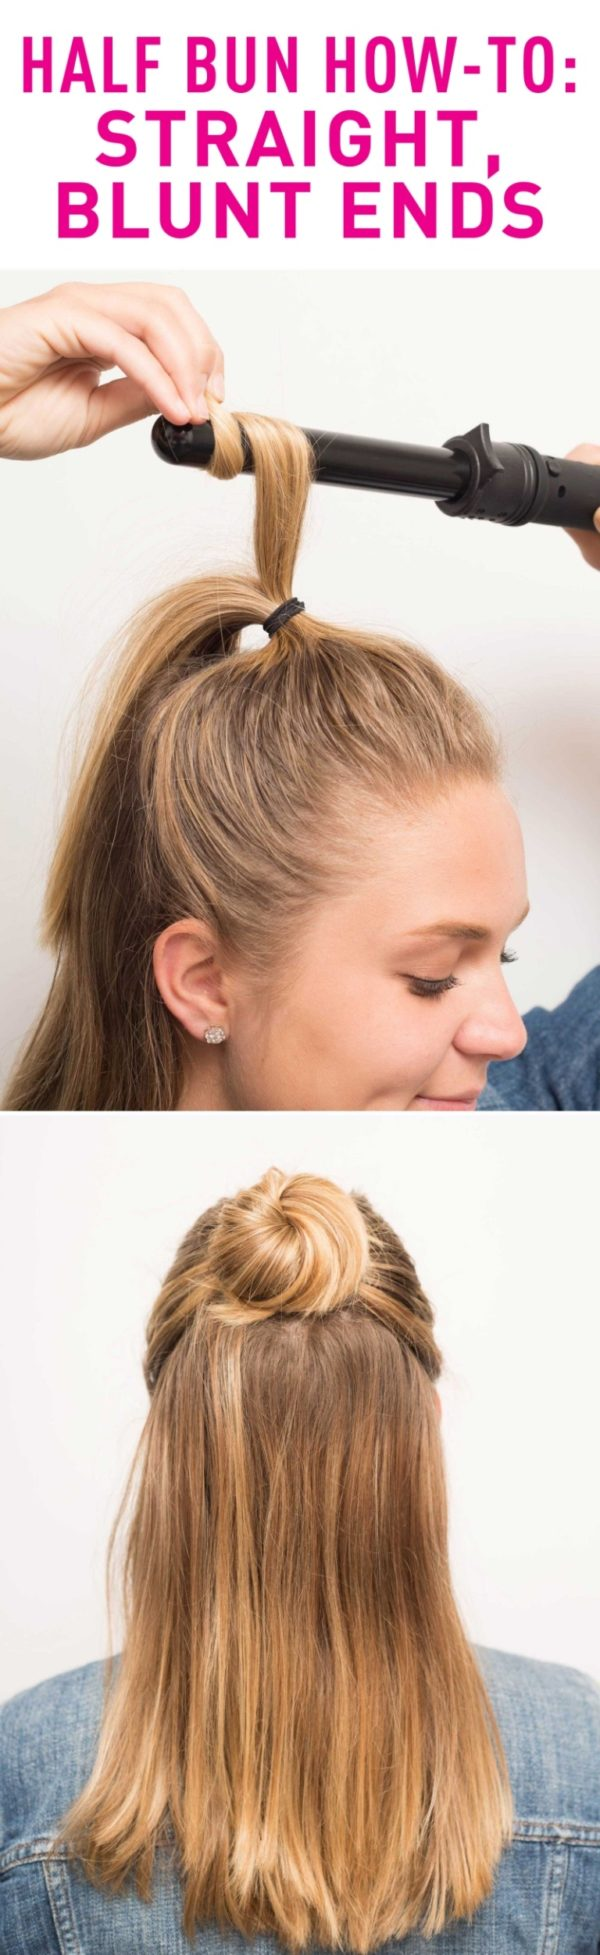 No Needed Sock For a Perfect Hair Bun. 16 Ways To Try Now